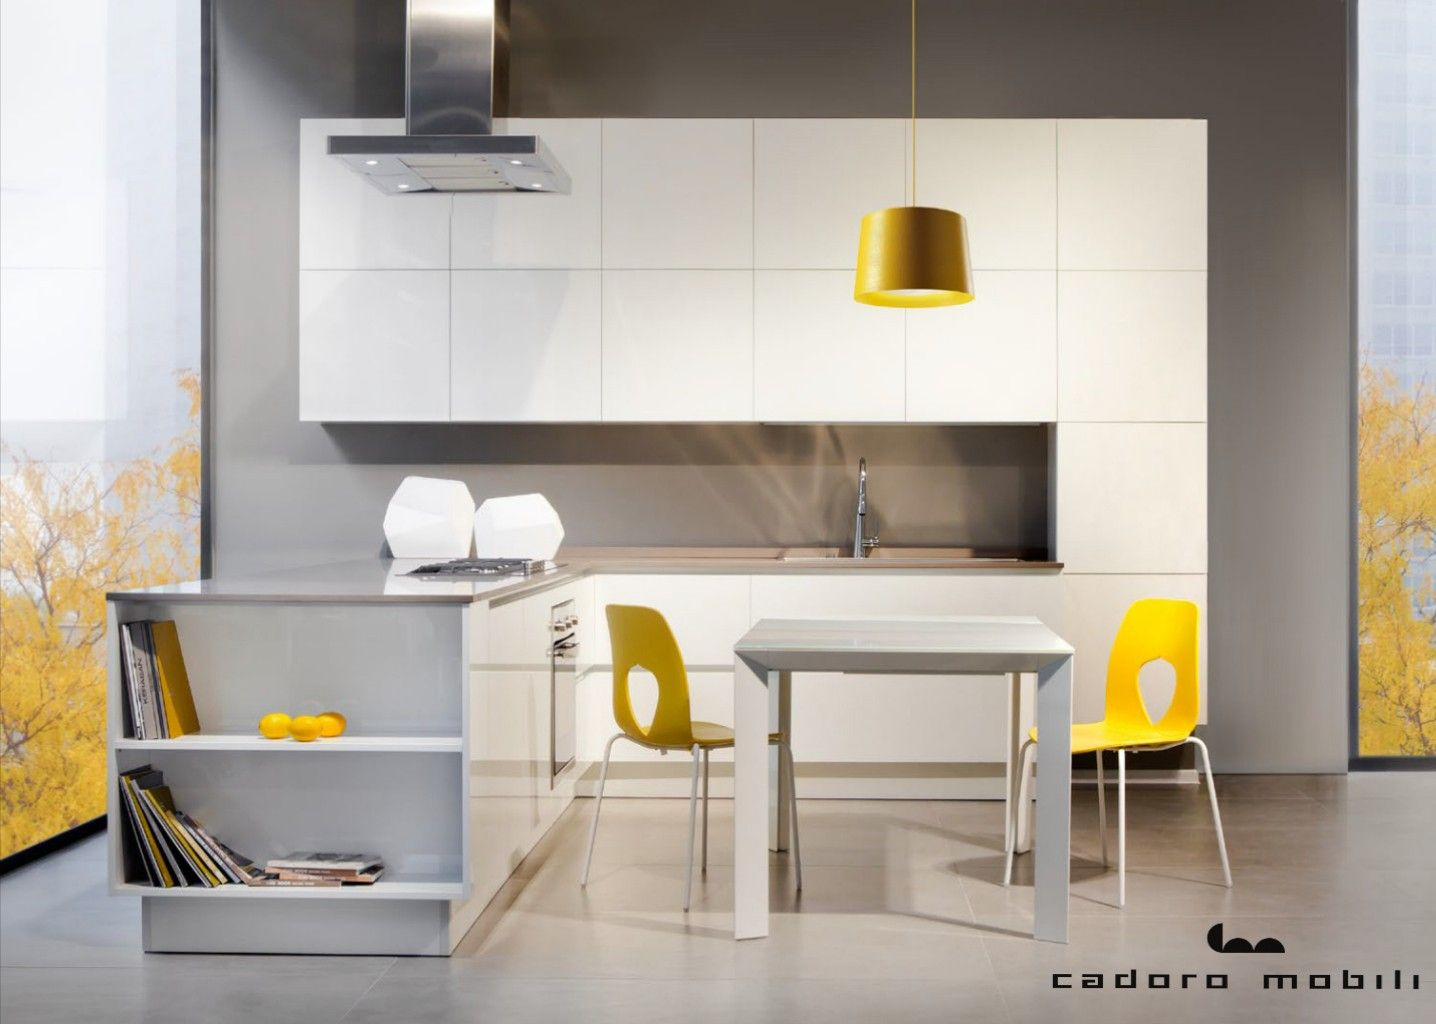 Pin on Kitchen ideas by Cadoro Mobili